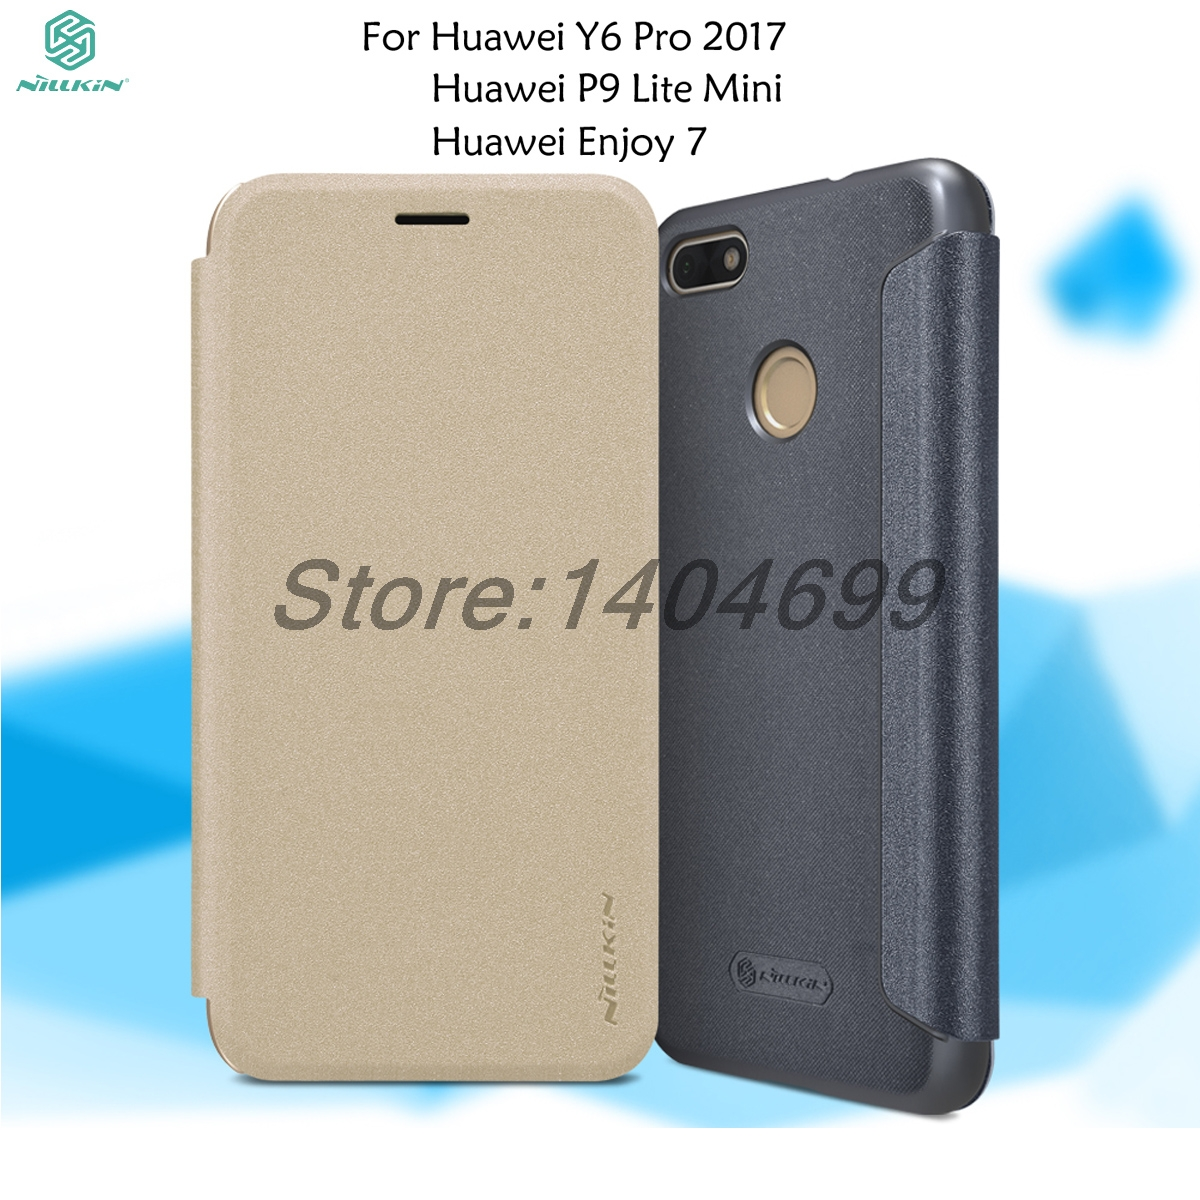 detailed look cf7f8 0db04 US $7.91 20% OFF|Nillkin Huawei Y6 Pro 2017 Case Huawei P9 Lite Mini Flip  Case Sparkle Series PU Leather Cover Case For Huawei Enjoy 7-in Flip Cases  ...